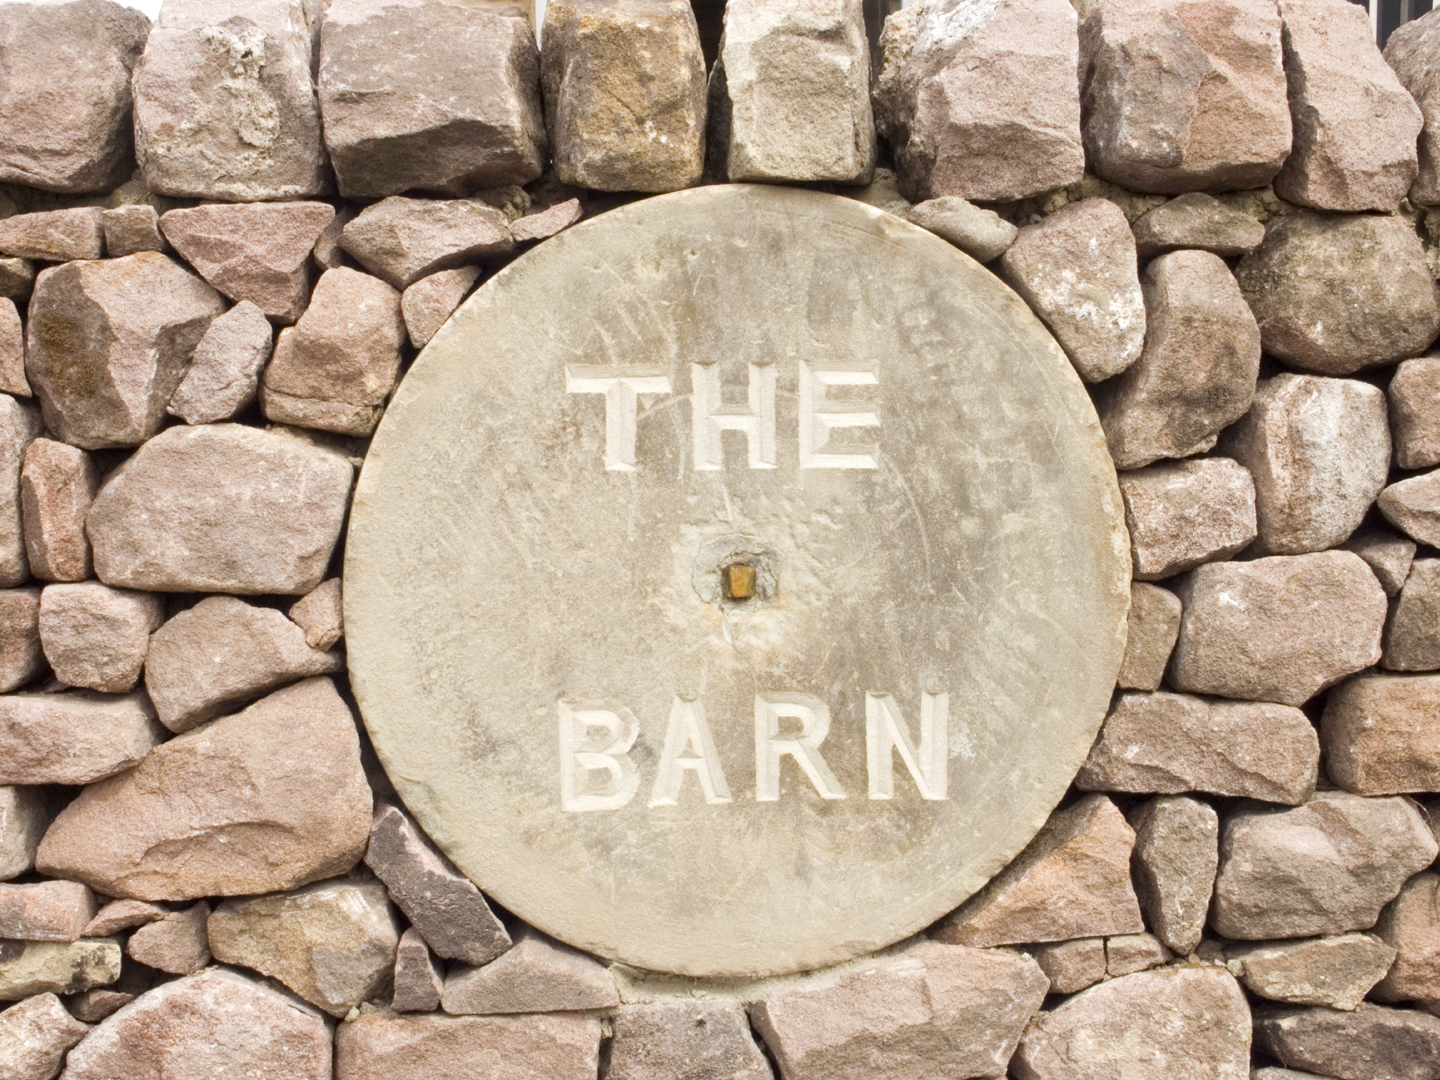 Entrance to The Barn (Ref. 2079).